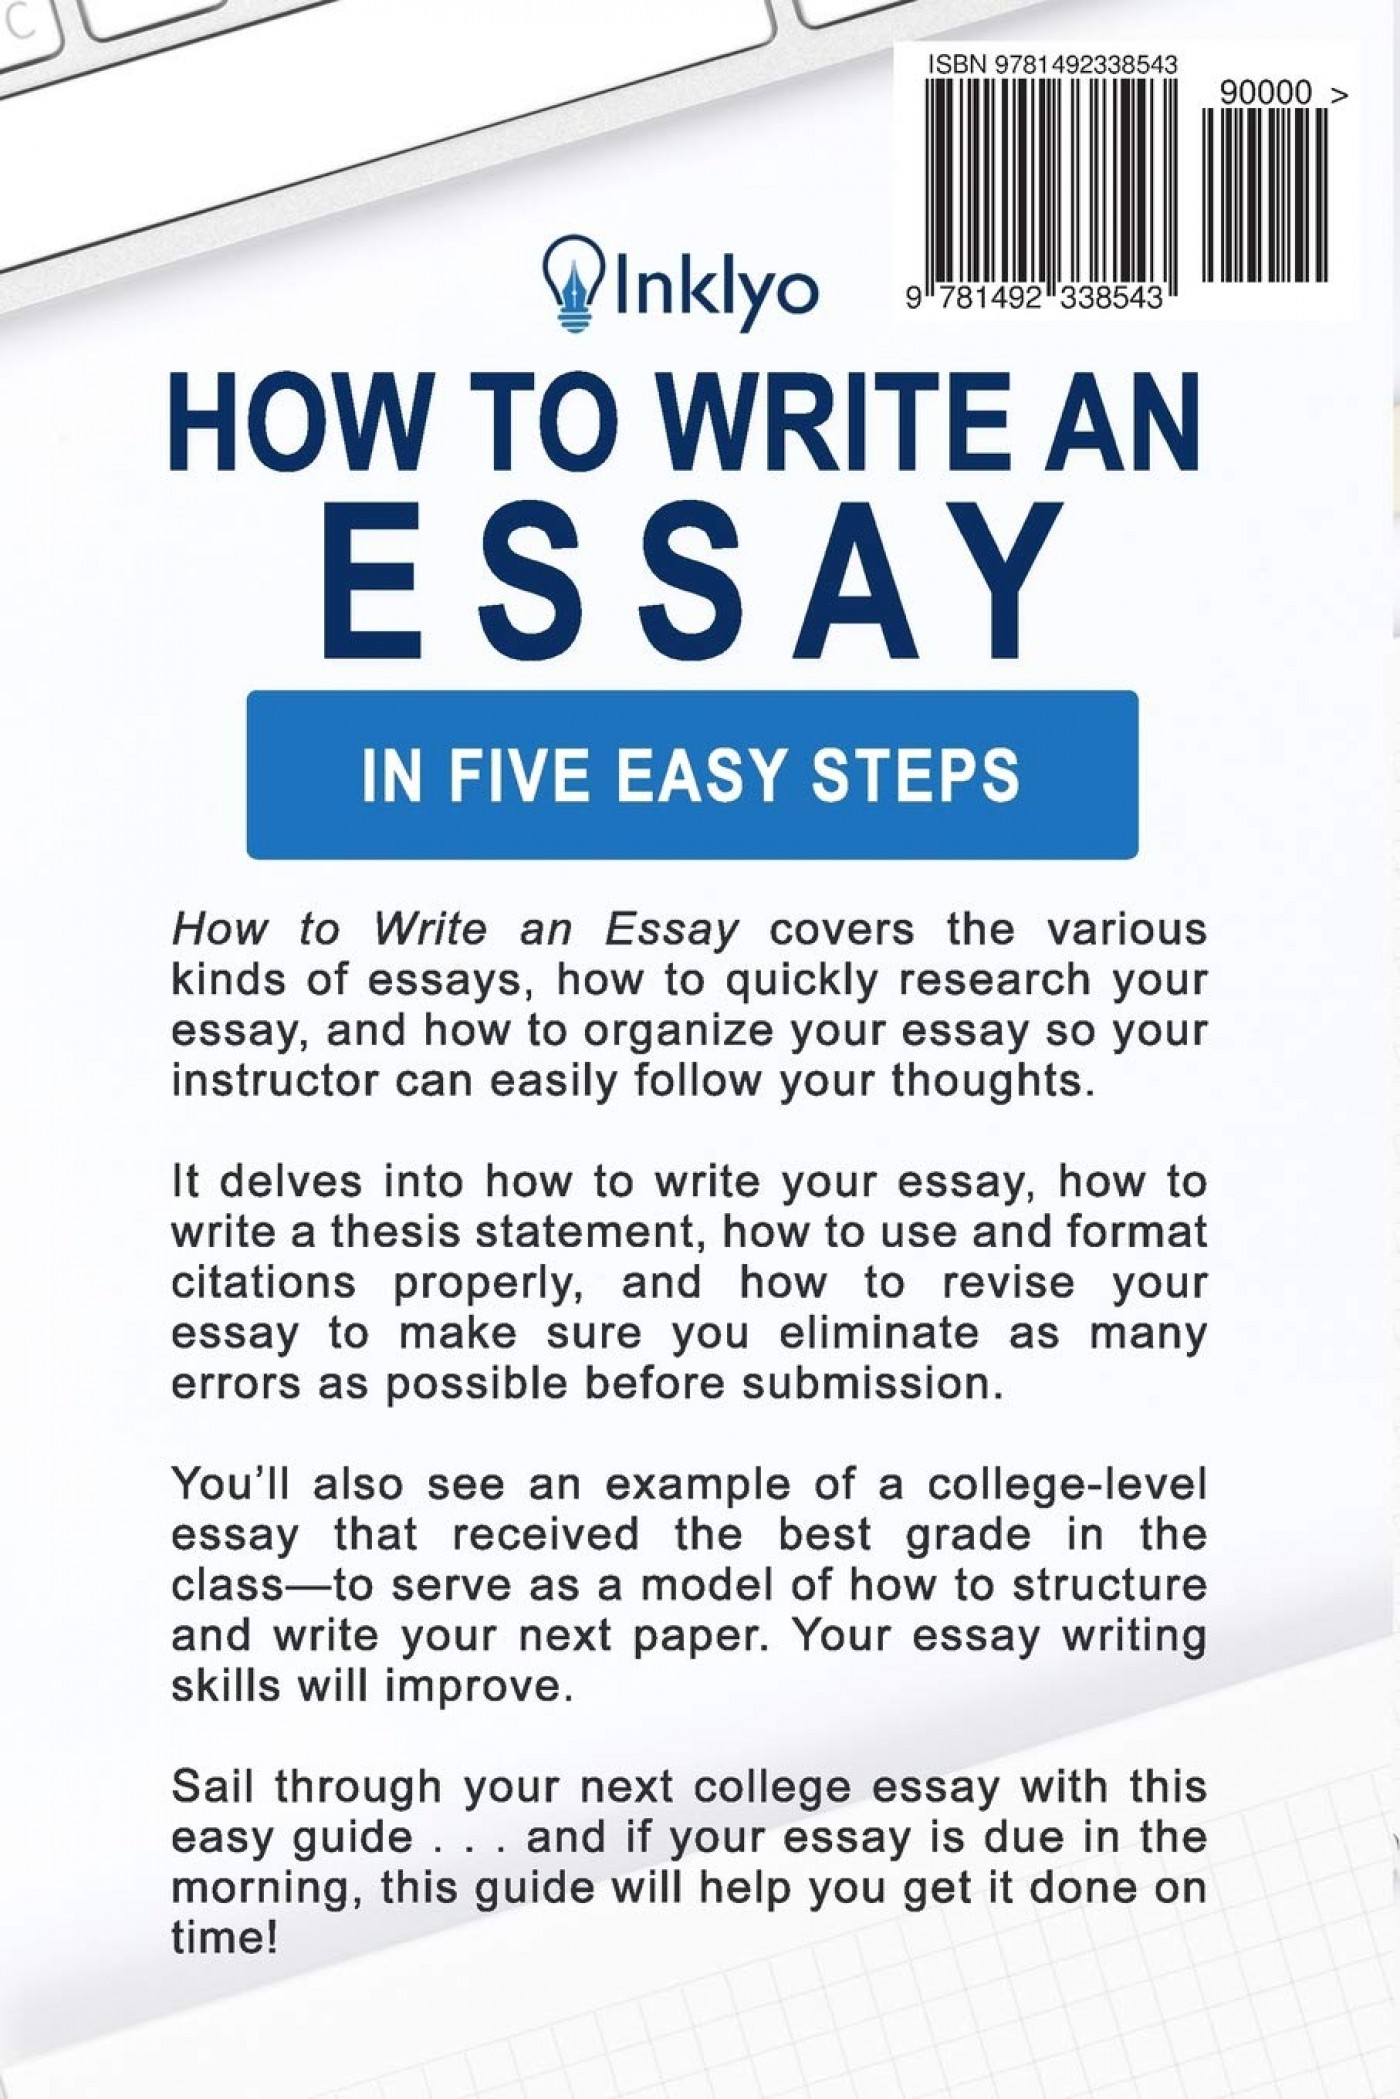 013 Essay Example 71v7ckw5pll Writing Striking A Creative About Yourself College Outline 5 Steps To 1400